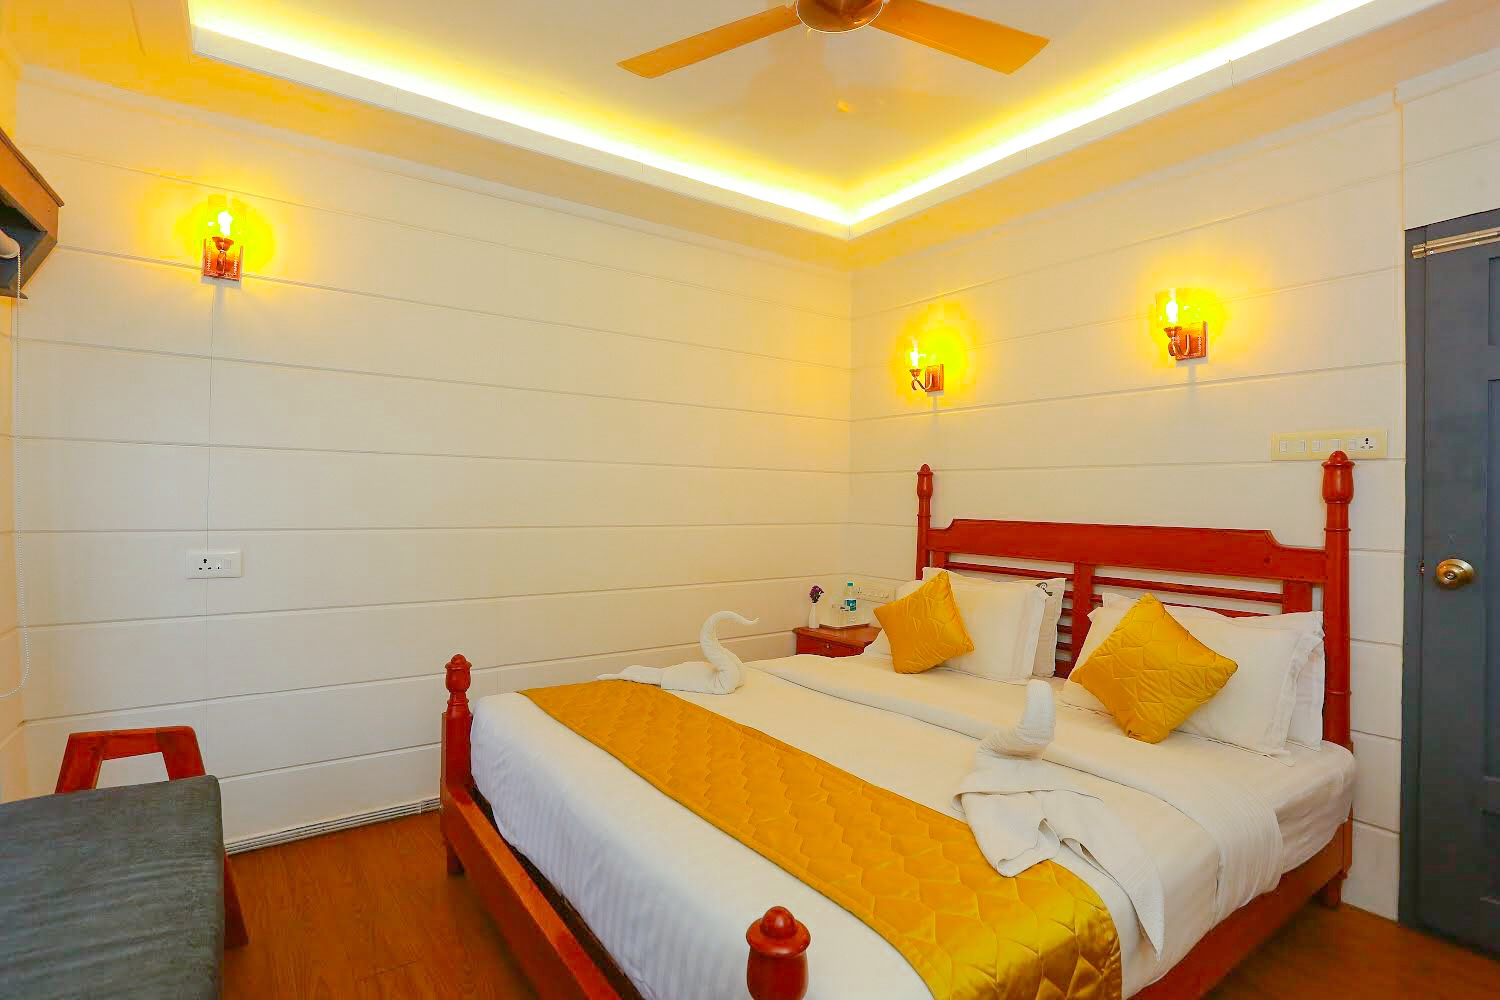 Alleppey Boat House|Boat House in South Kerala